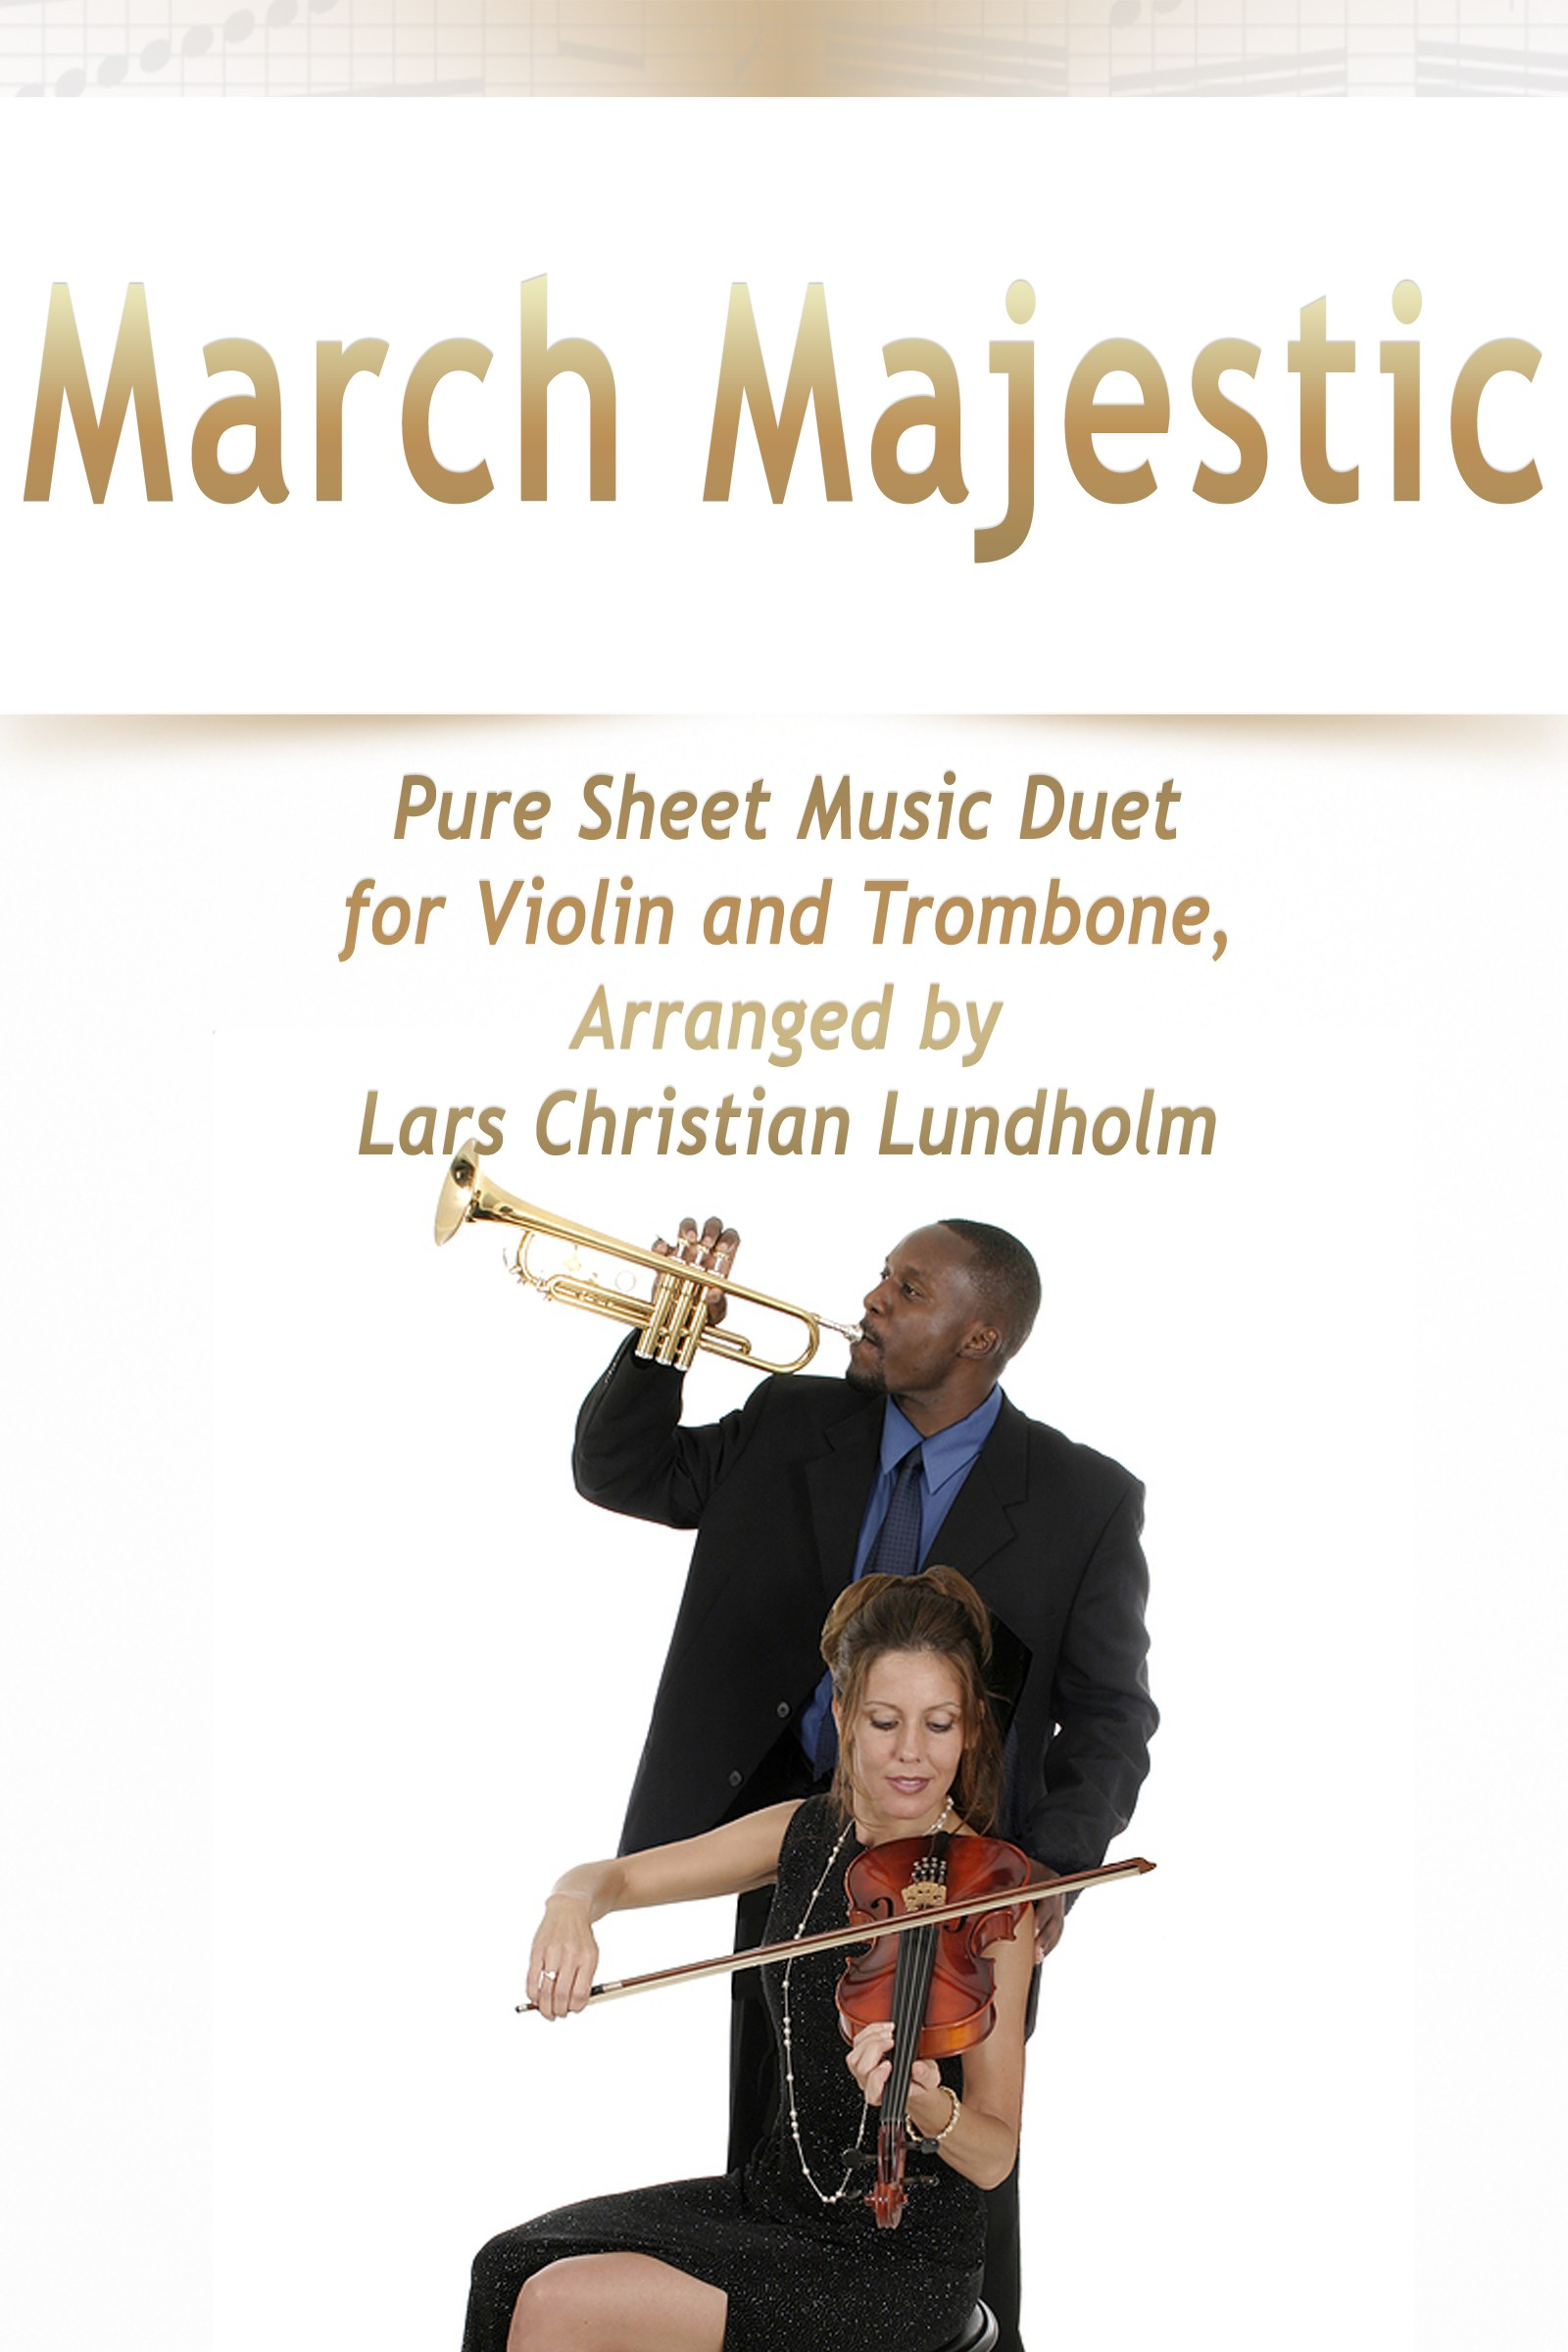 March Majestic Pure Sheet Music Duet for Violin and Trombone, Arranged by  Lars Christian Lundholm, an Ebook by Pure Sheet Music